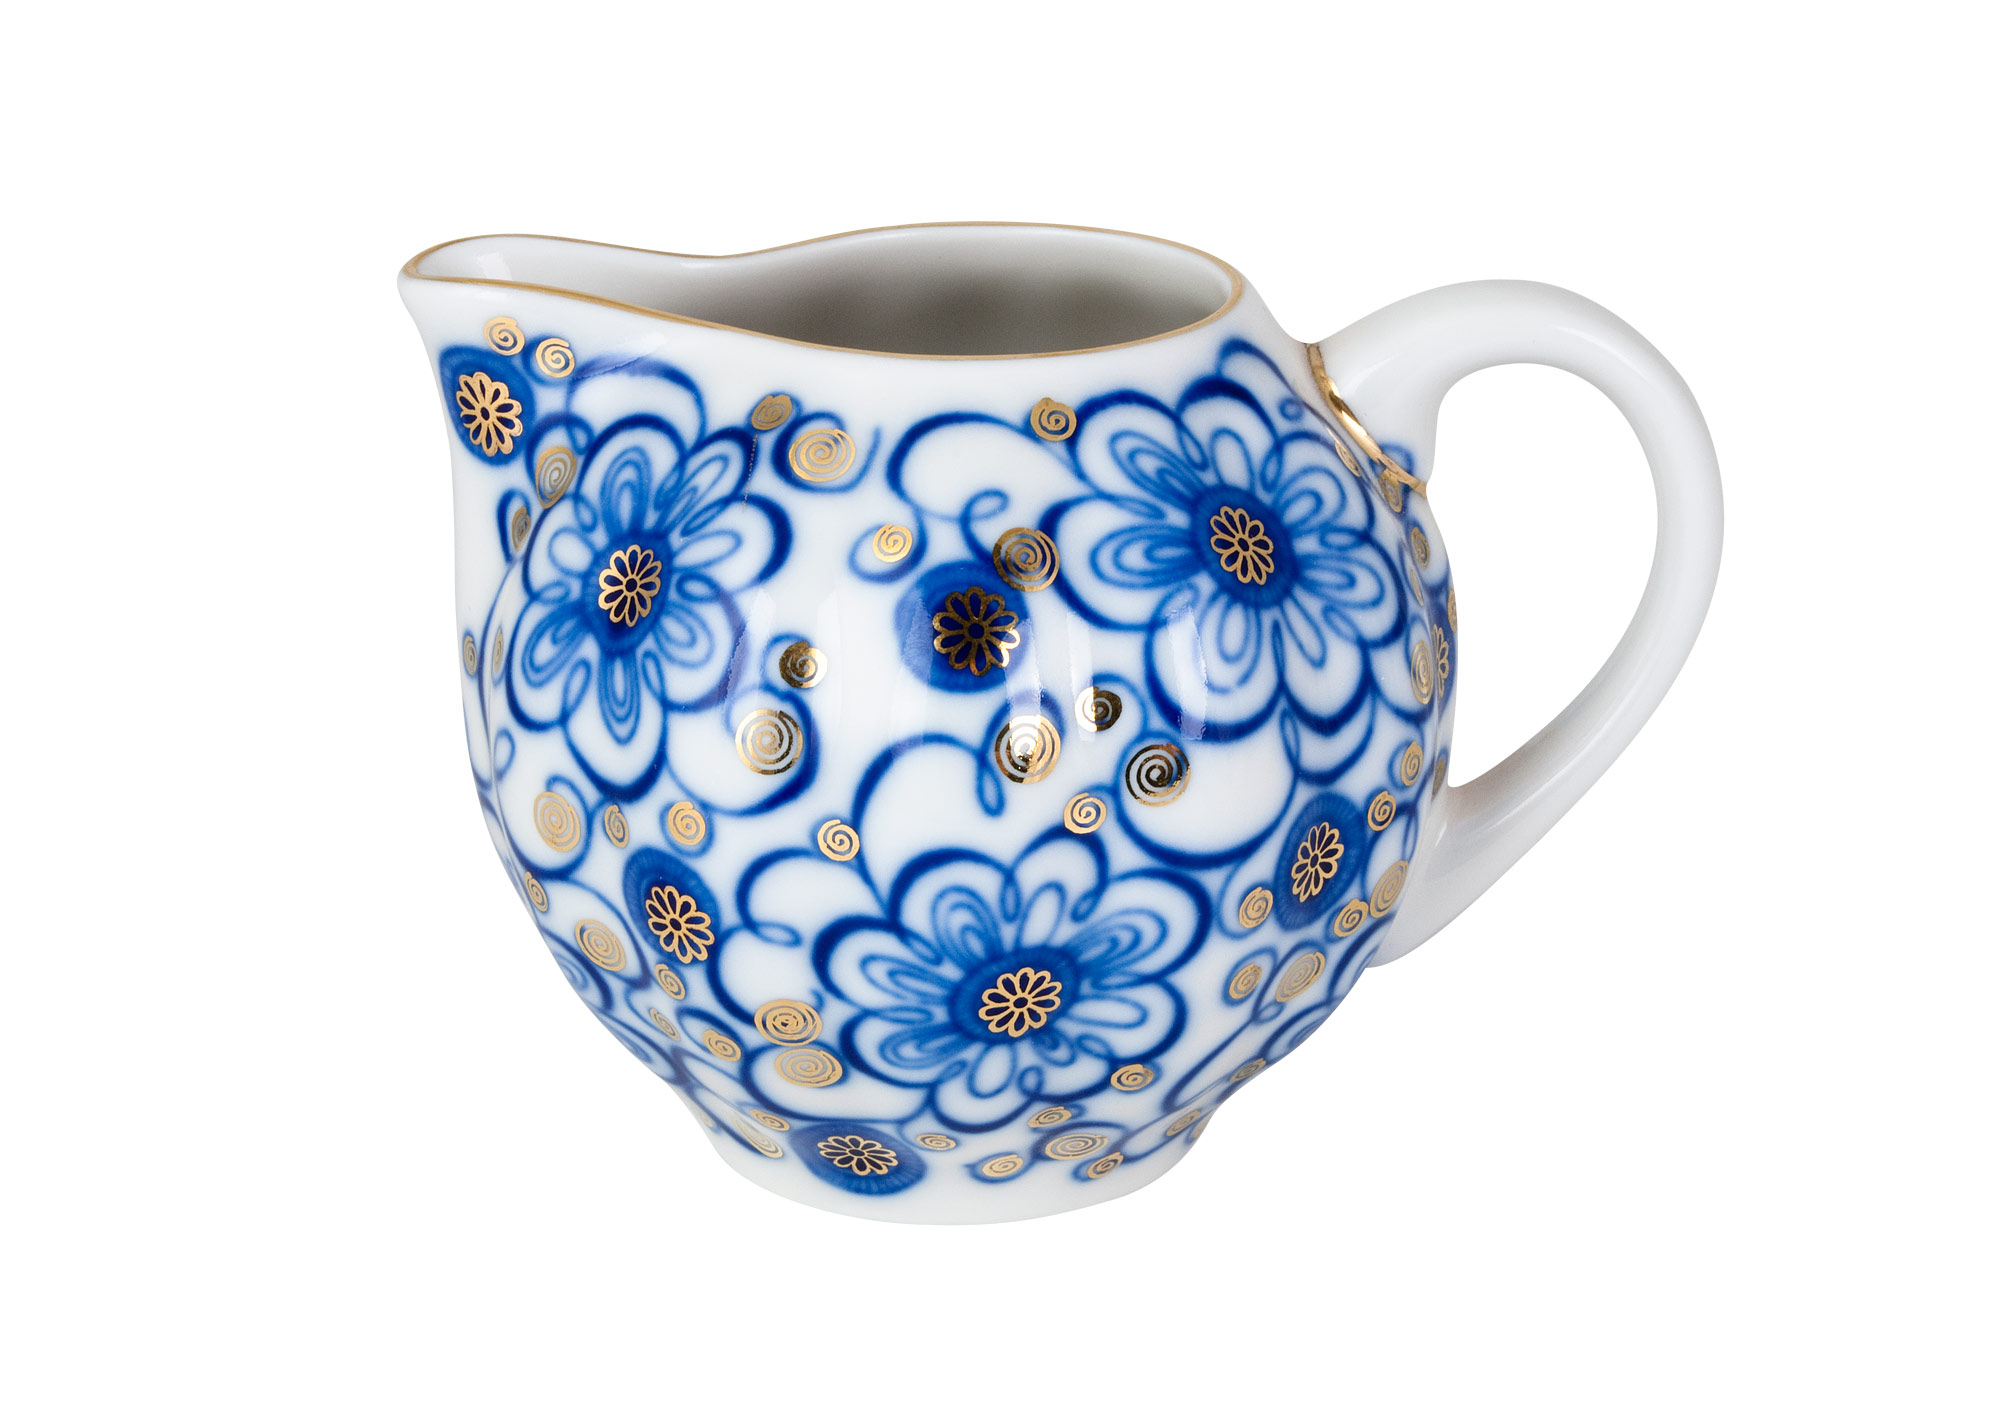 Buy Winding Twig Creamer at GoldenCockerel.com